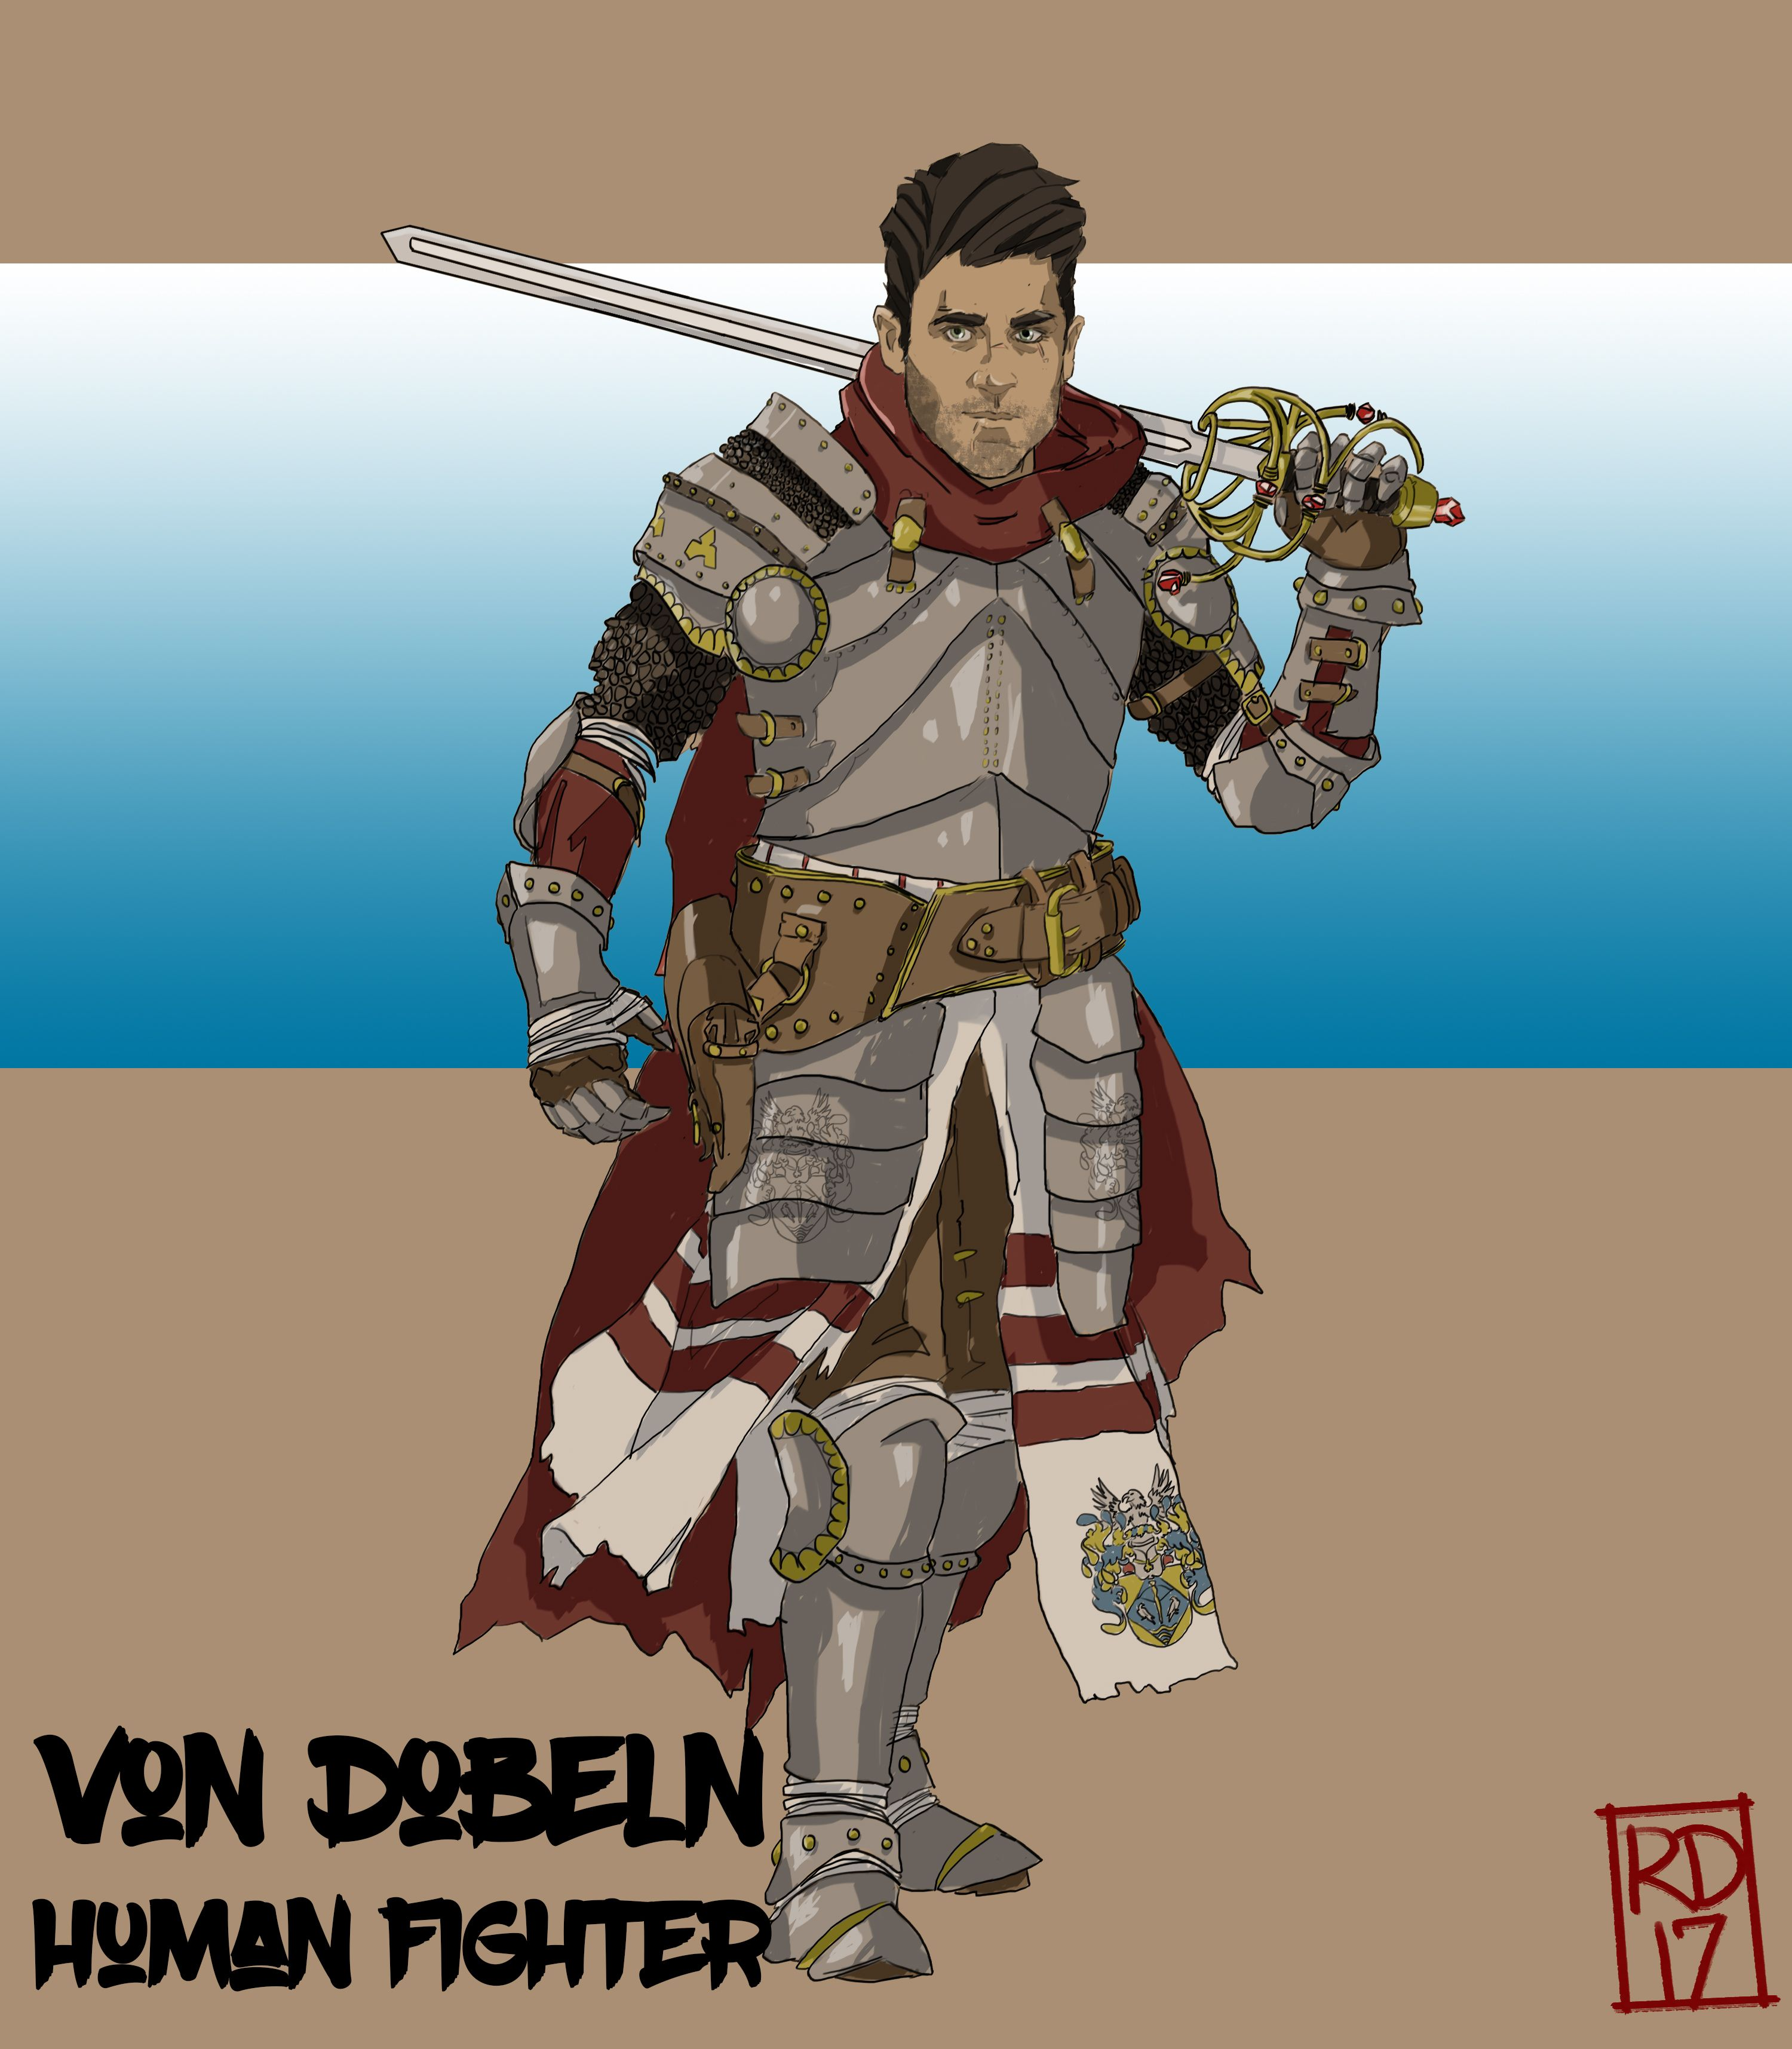 [Art] Character art inspired and commissioned by members of this community - Album on Imgur